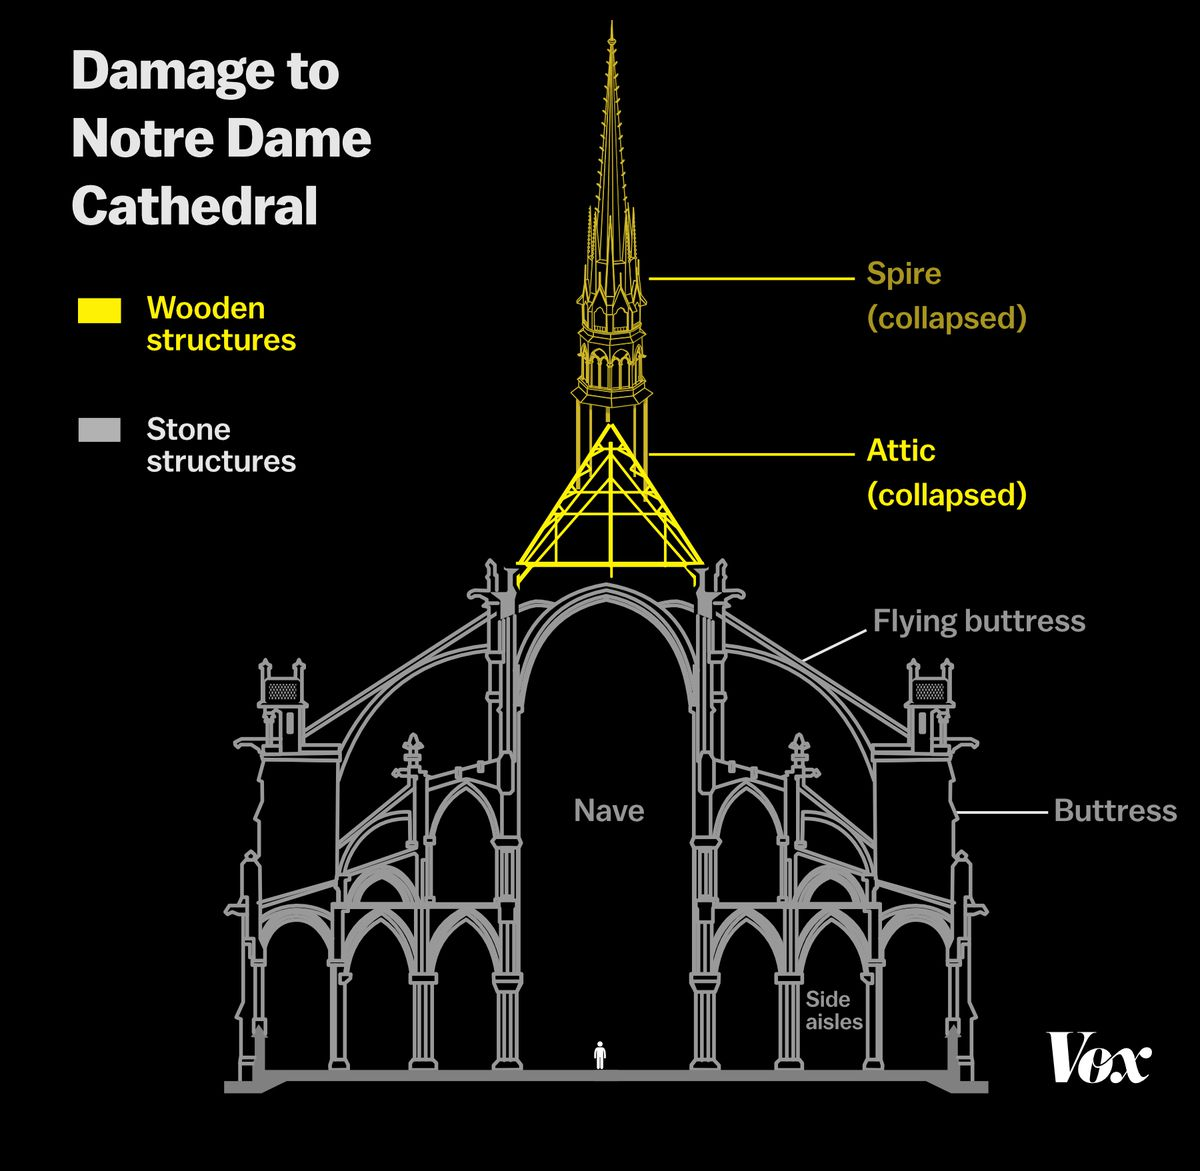 Notre Dame Cathedral fire: why it was so destructive